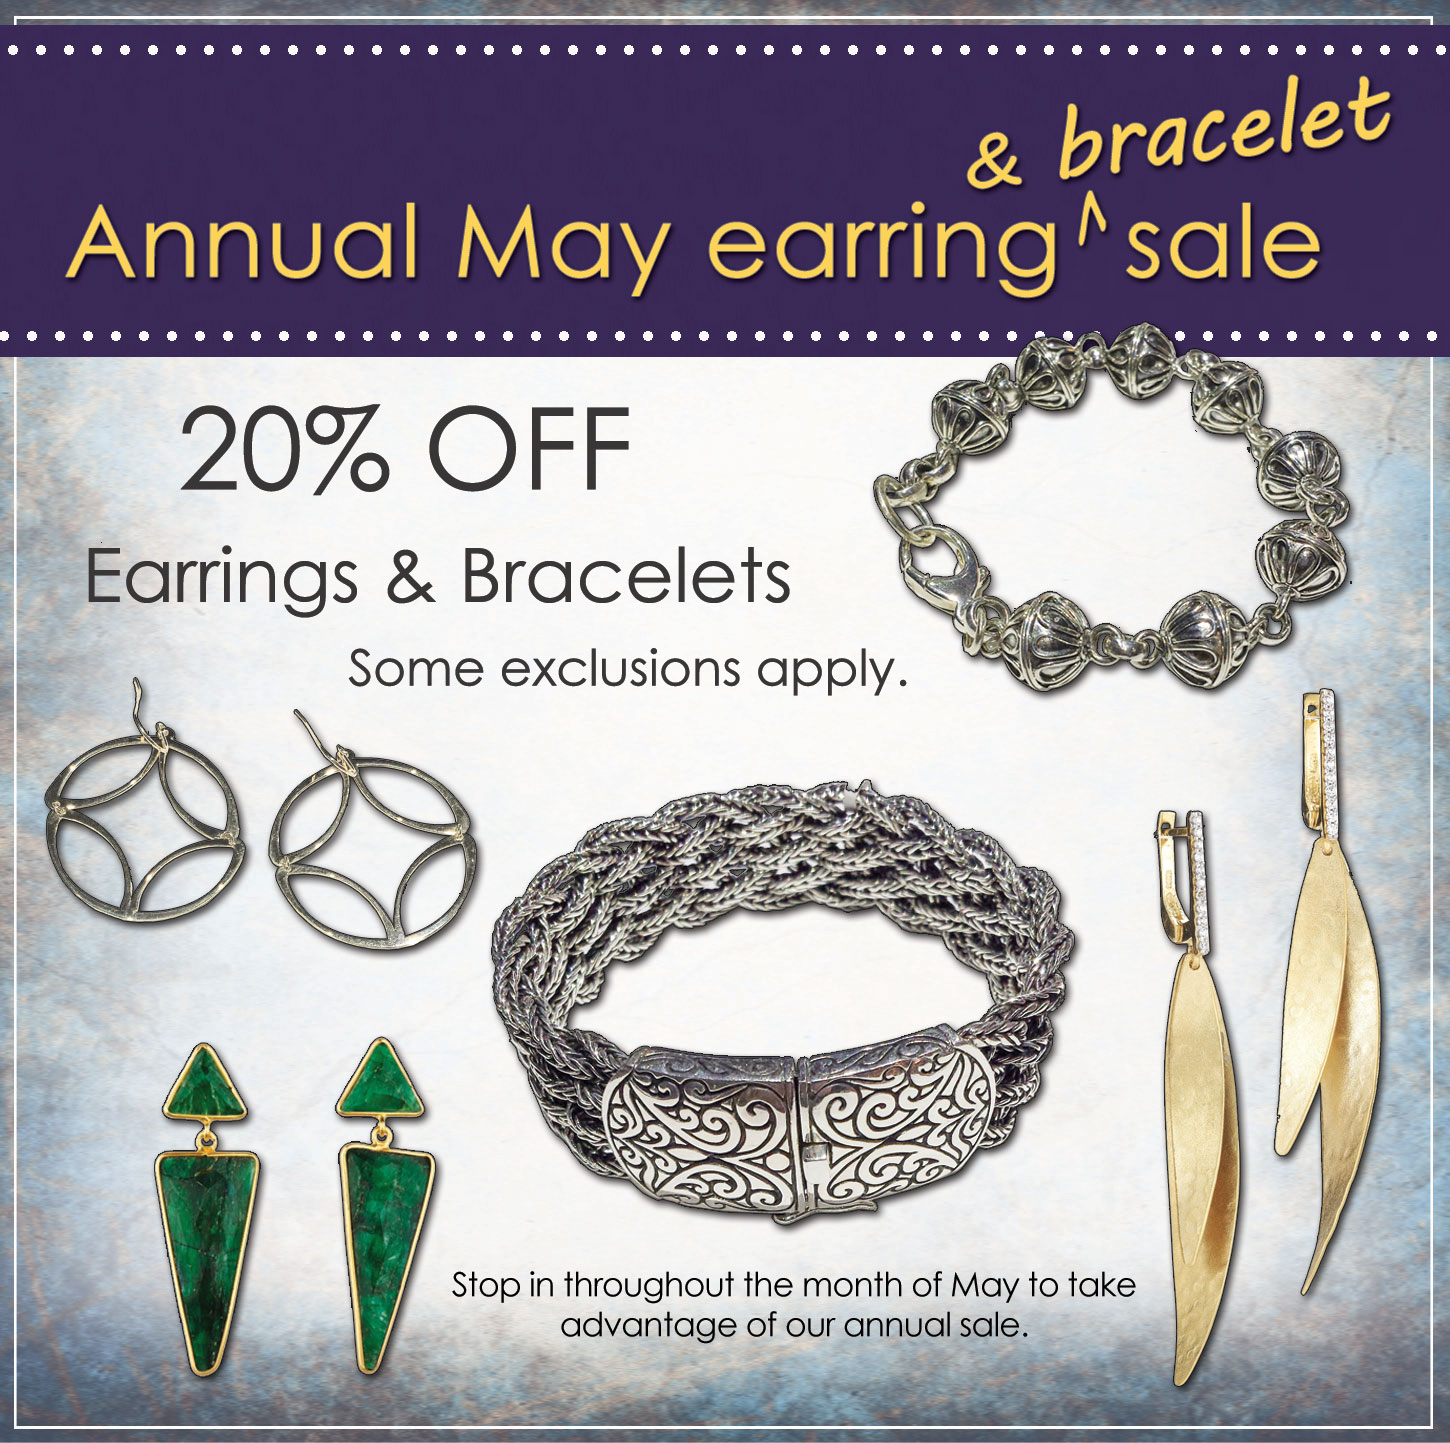 Annual Earring & Bracelet Sale | East Towne Jewelers | Mequon, WI East Towne Square